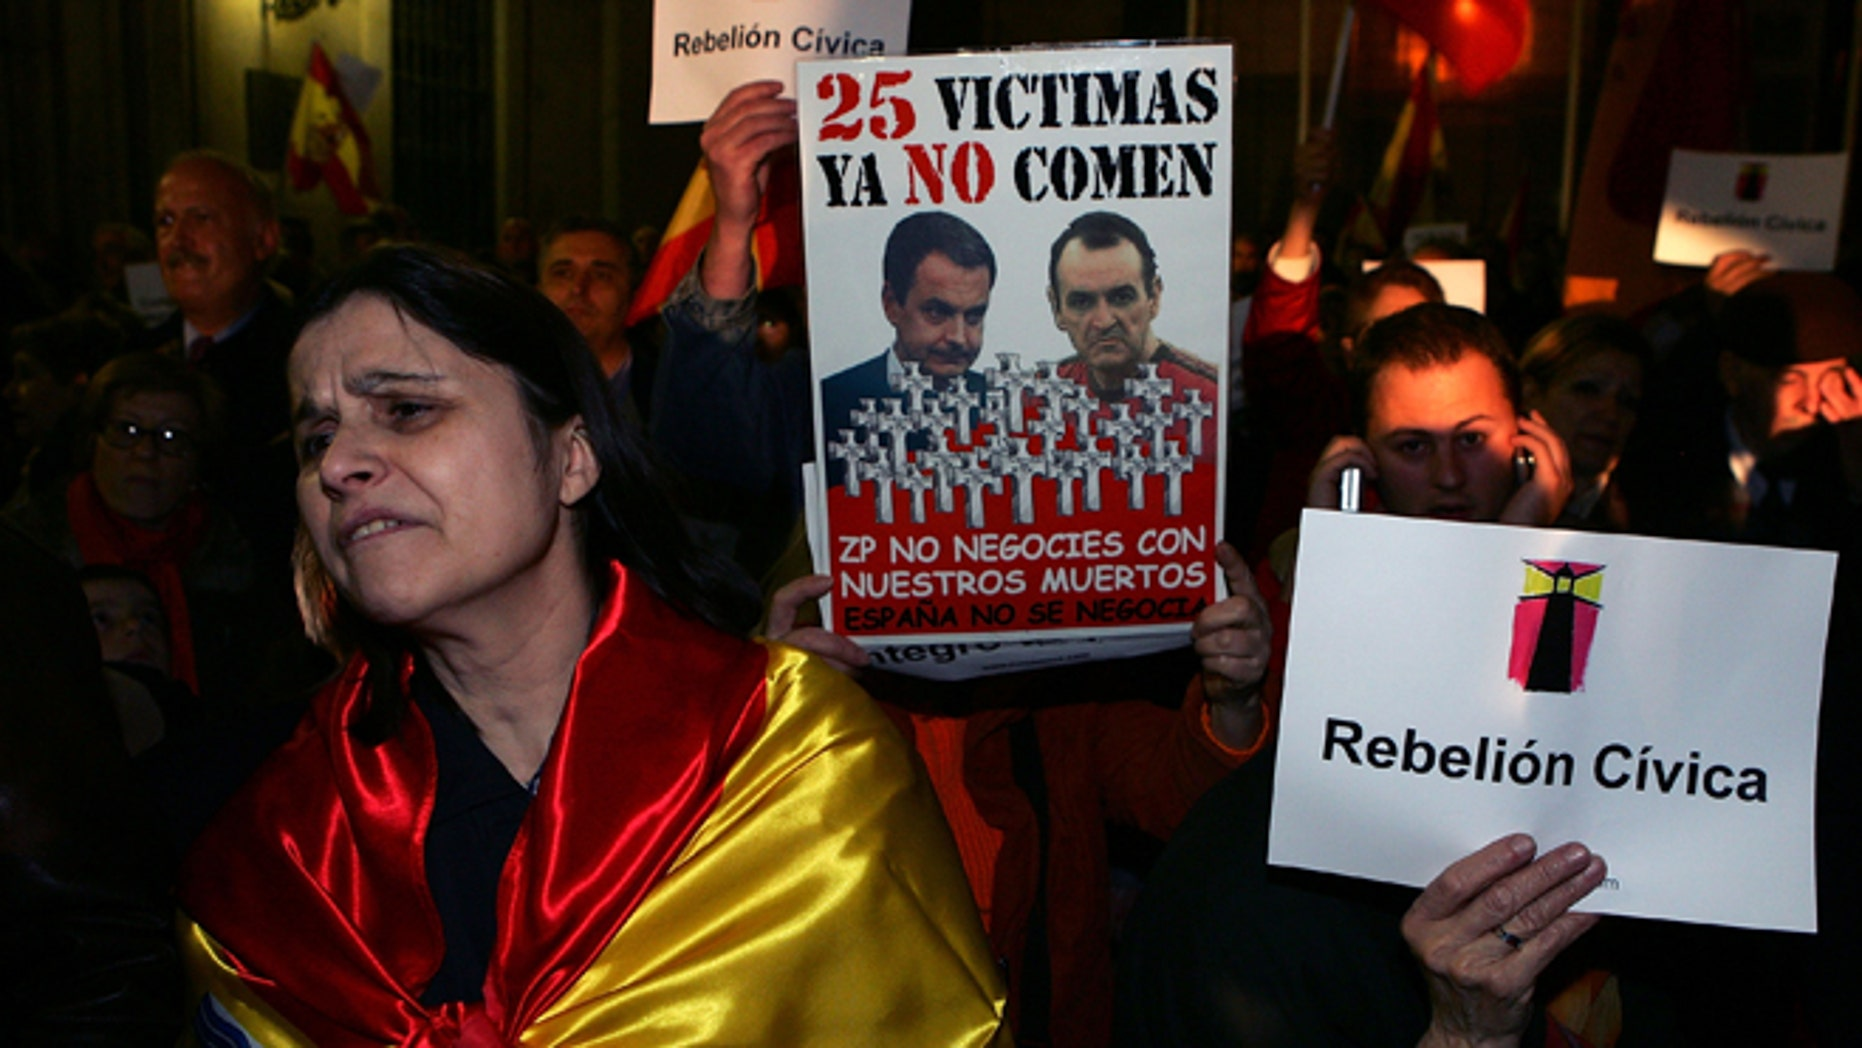 A woman wears the Spanish flag during a protest in front of the Town Hall against the house arrest granted to the hunger striking prisoner Inaki de Juana Chaos on March 2, 2007 in Madrid, Spain. (Photo by Denis Doyle/Getty Images)